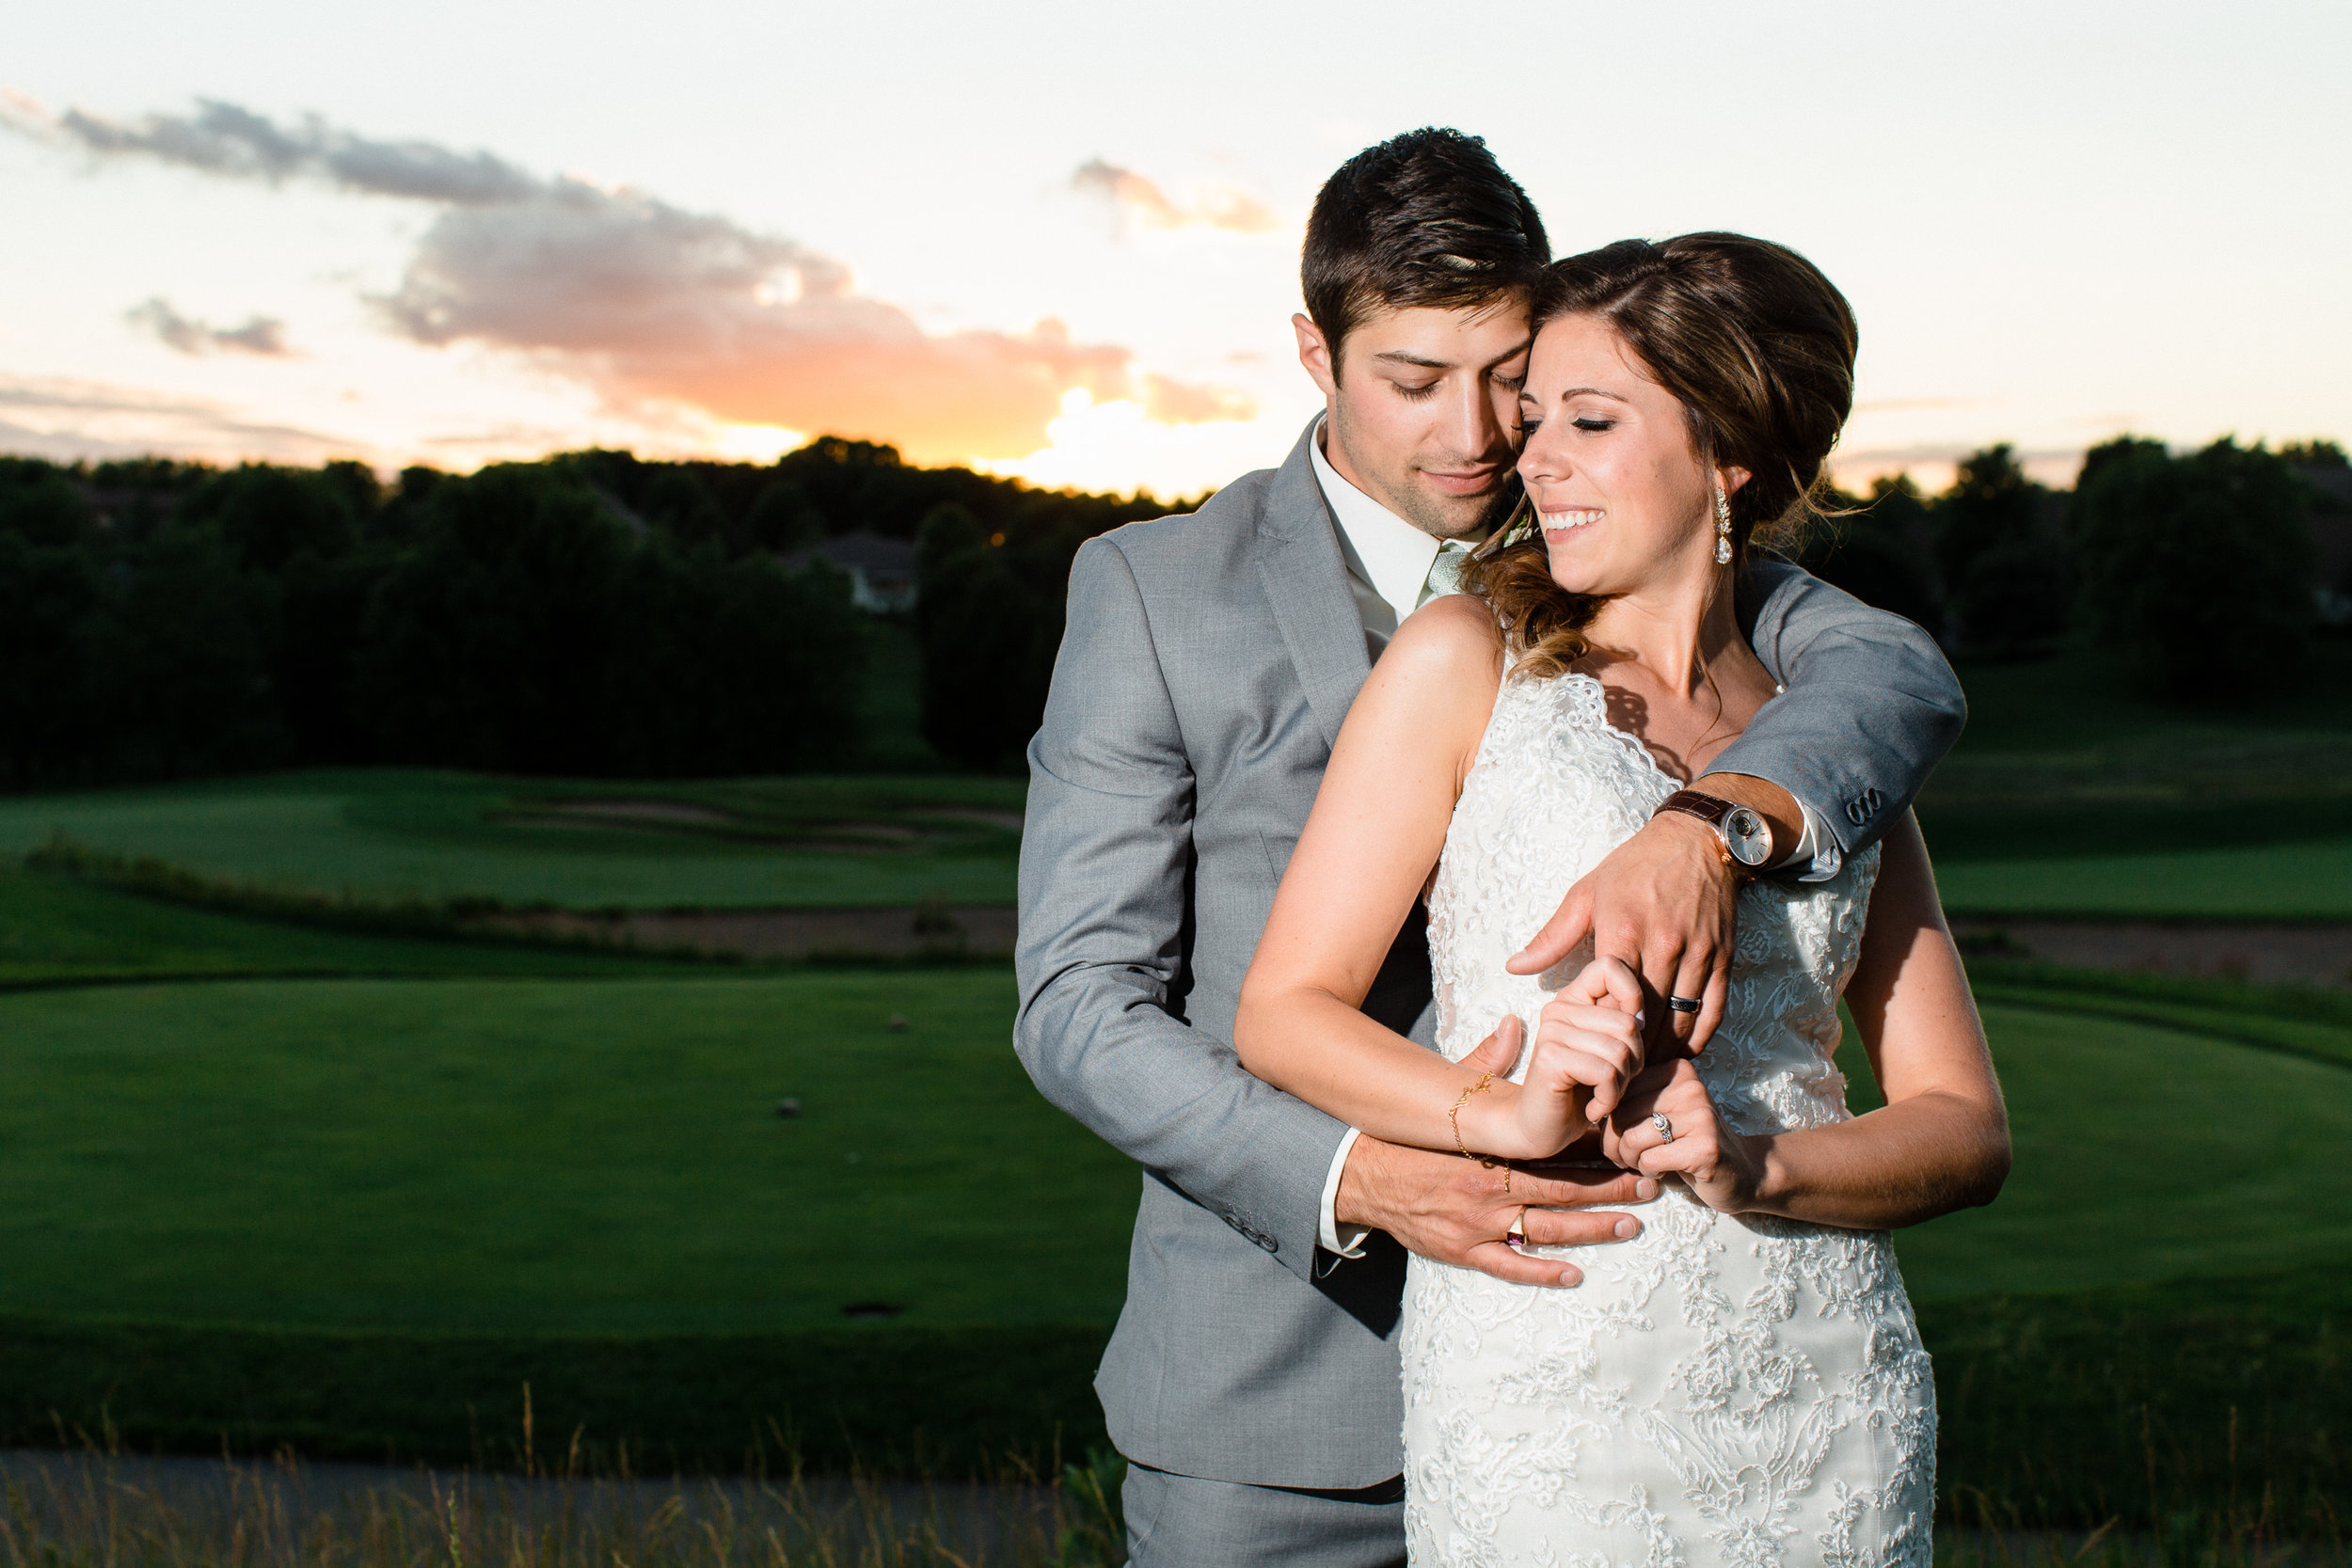 Alli & Brock - Troy Burne Golf course, hudson wi